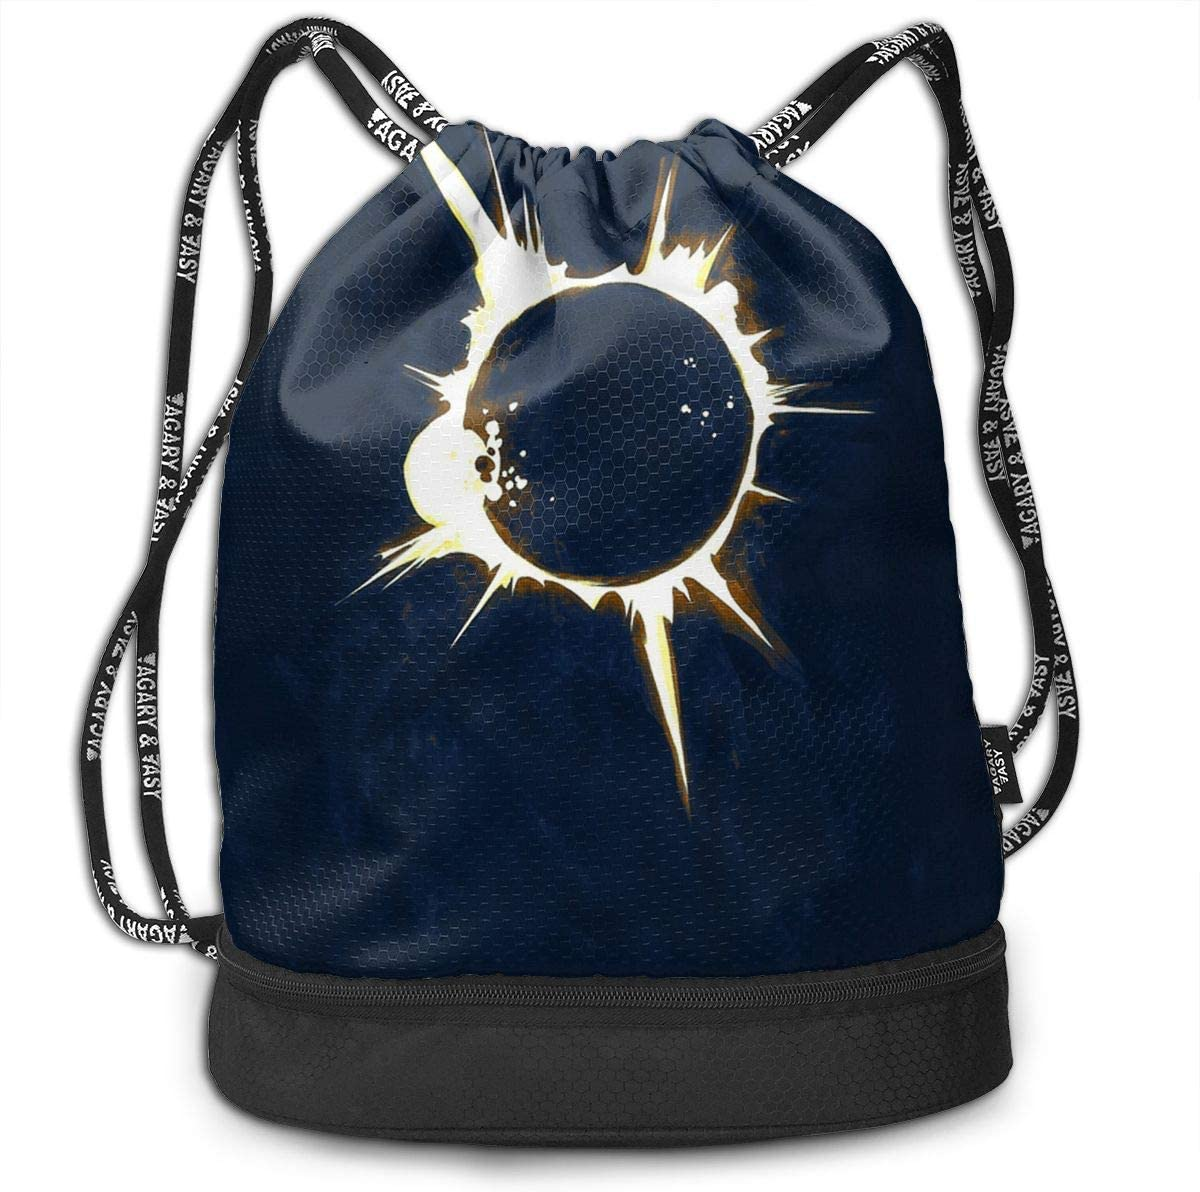 Homlife Multifunctional Drawstring Backpack Yoga Runner Daypack Shoe Bags with Eclipse Funny Logo for Sports Travel Portable Bundle Backpack